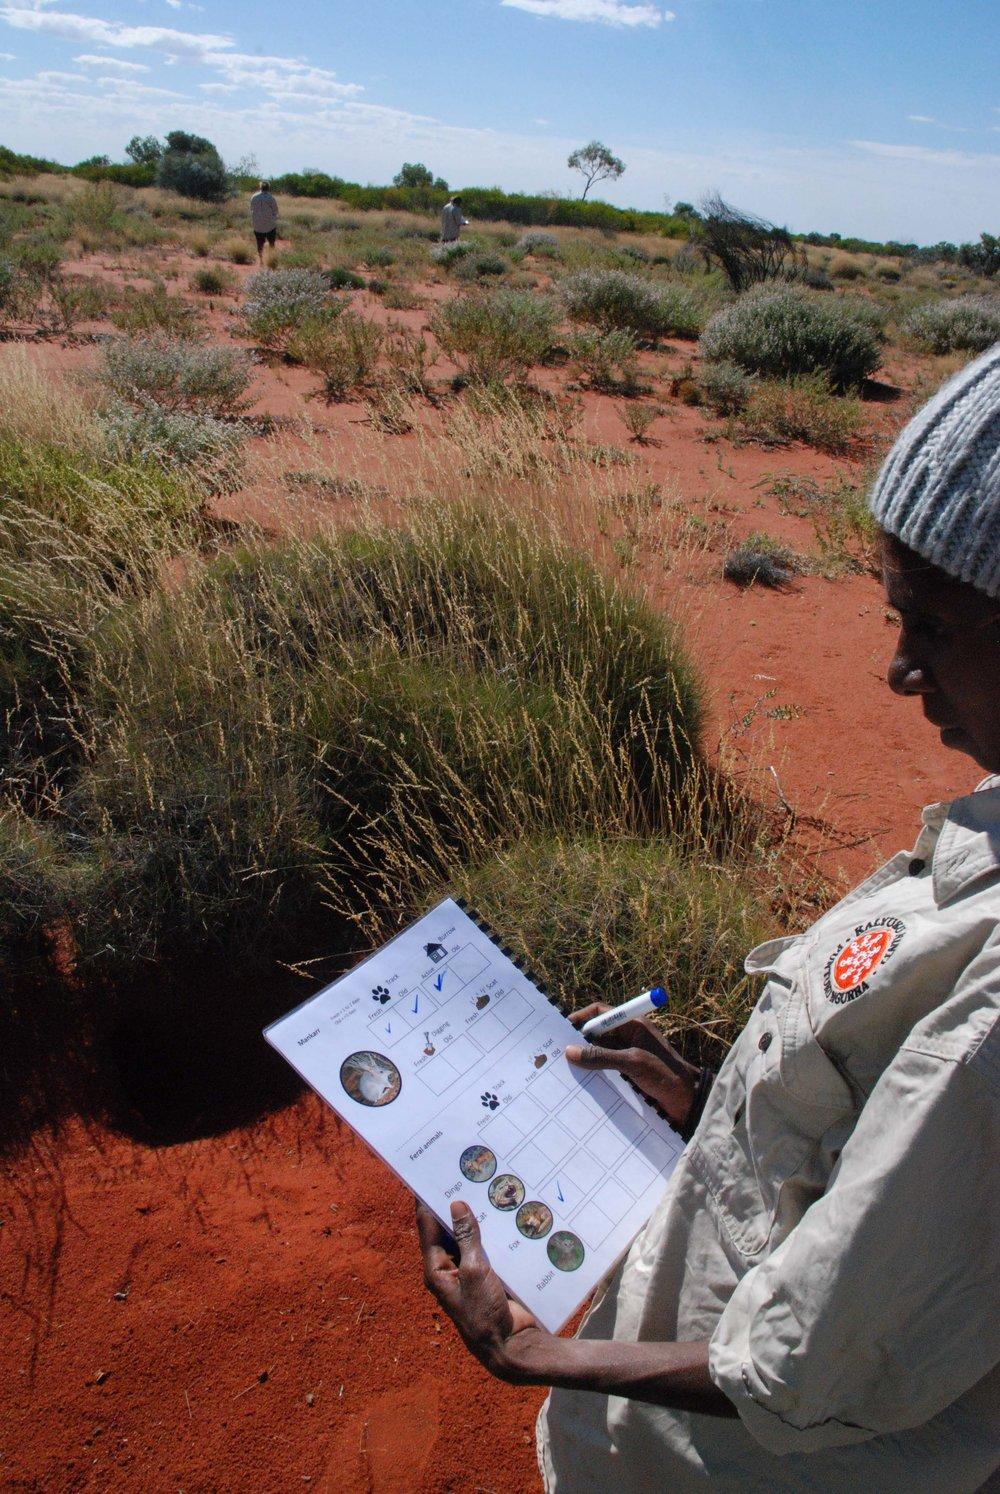 KJ ranger using a field resource that was designed by rangers to record data